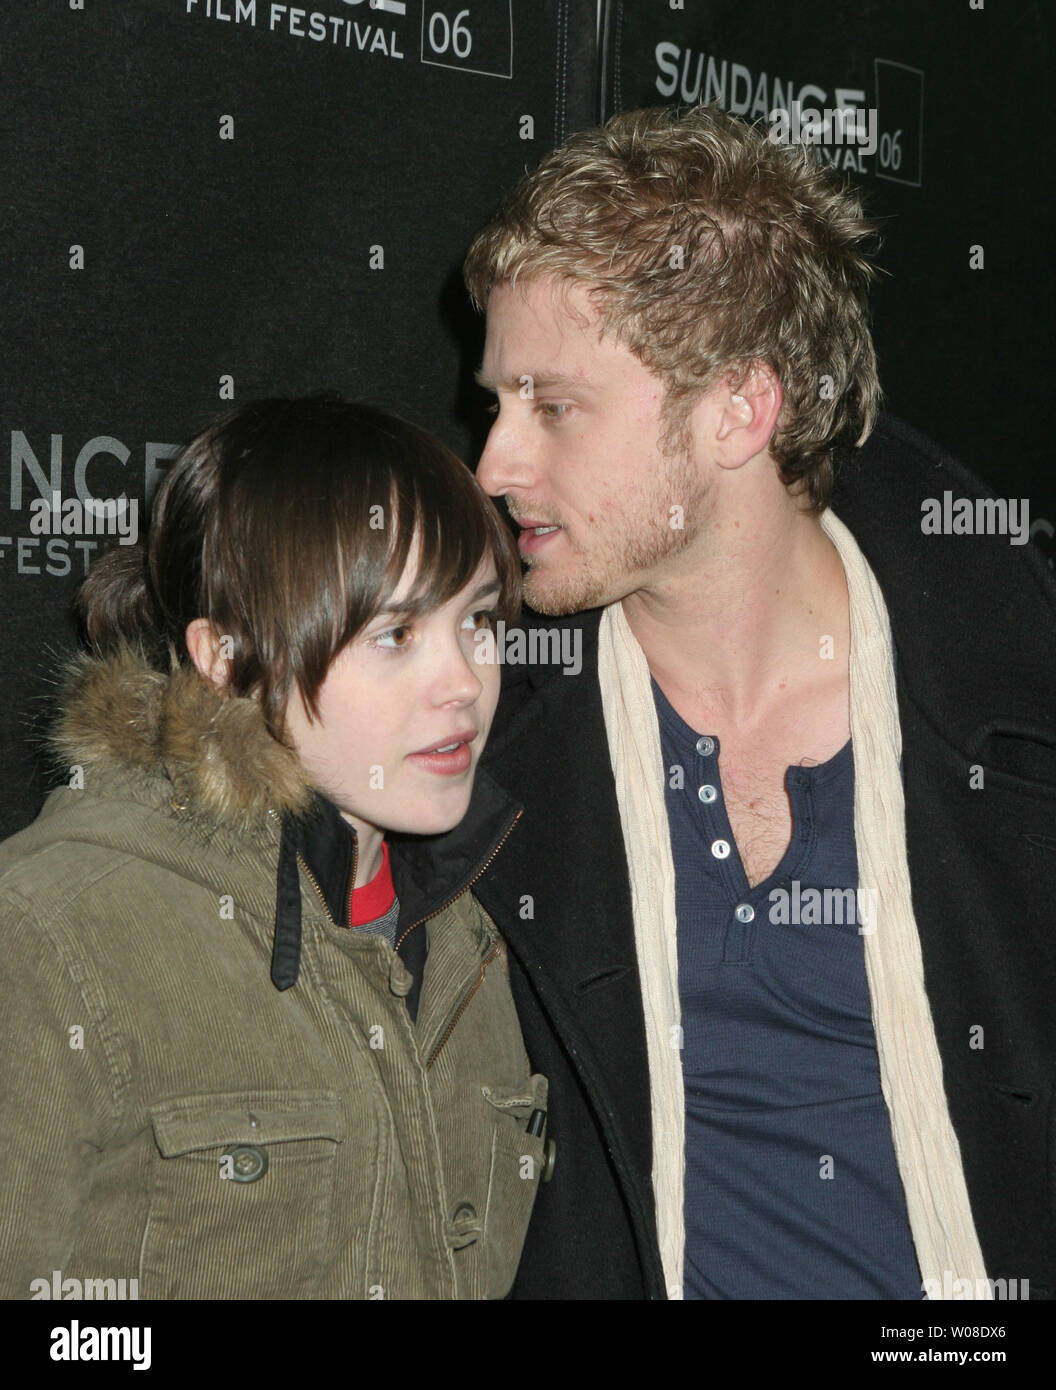 Ellen Page And Ben Foster Arrive At The Premiere Of Alpha Dog At The Eccles Center For Sundance 06 On January 26 2006 In Park City Utah Upi Photo Roger Wong Stock Photo Alamy